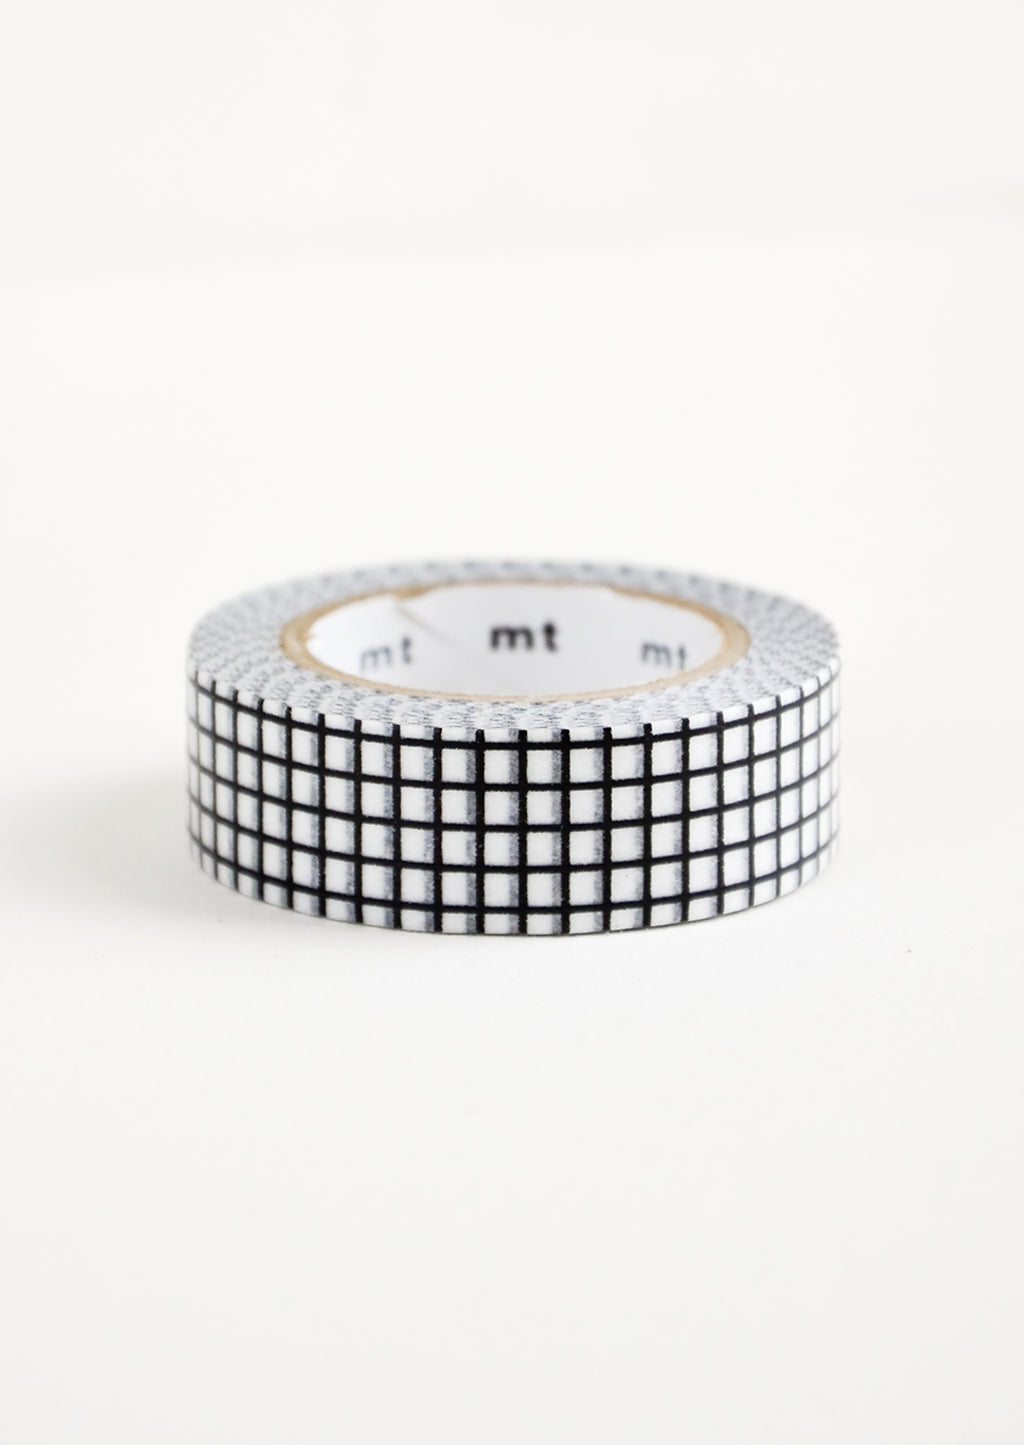 Black & White Grid: A roll of washi tape in a black and white grid pattern.